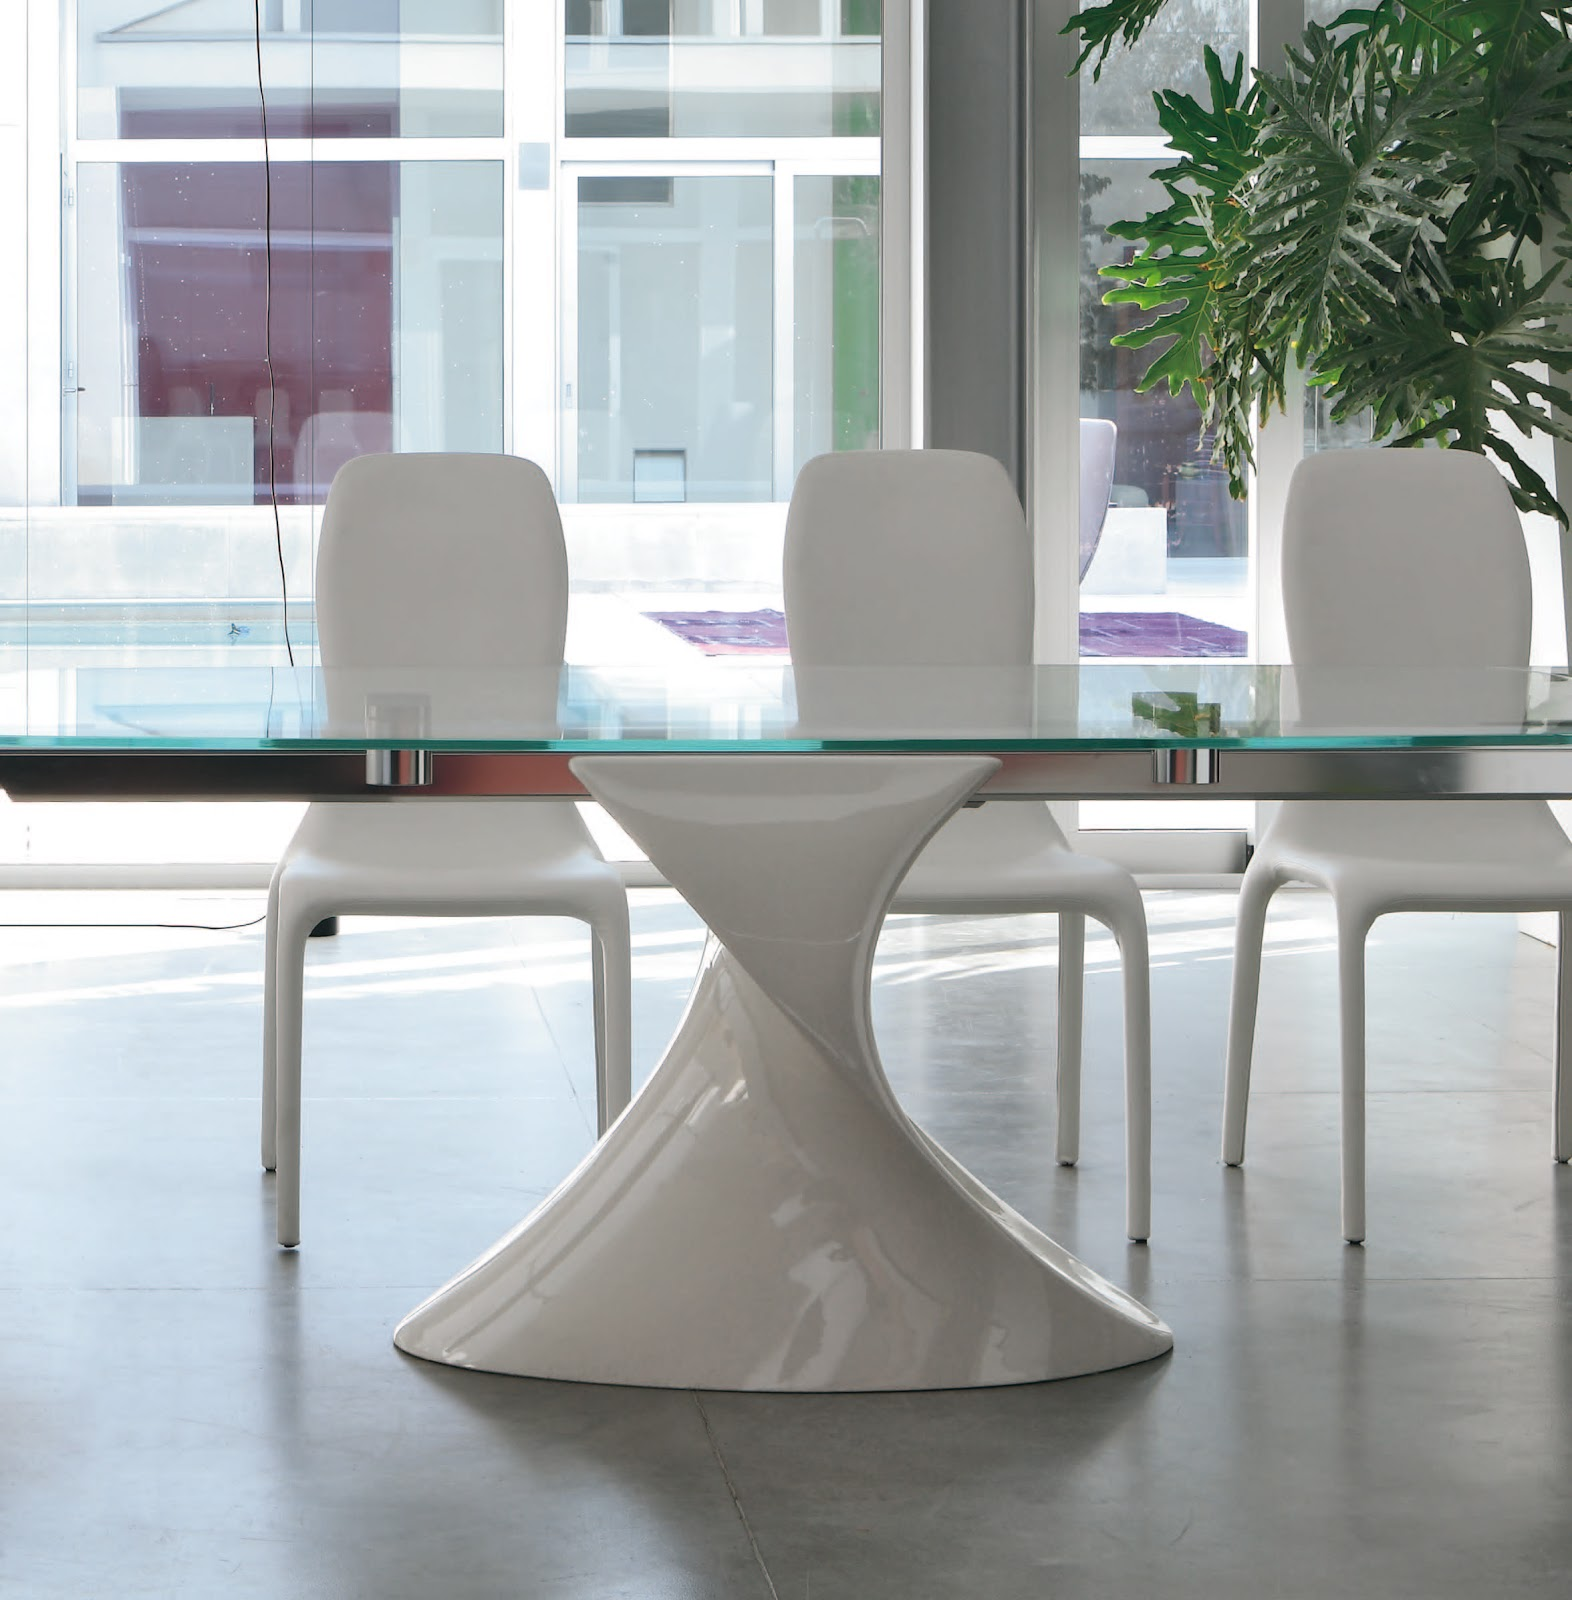 Inspiration mobilier design table avec pied design Table en verre design